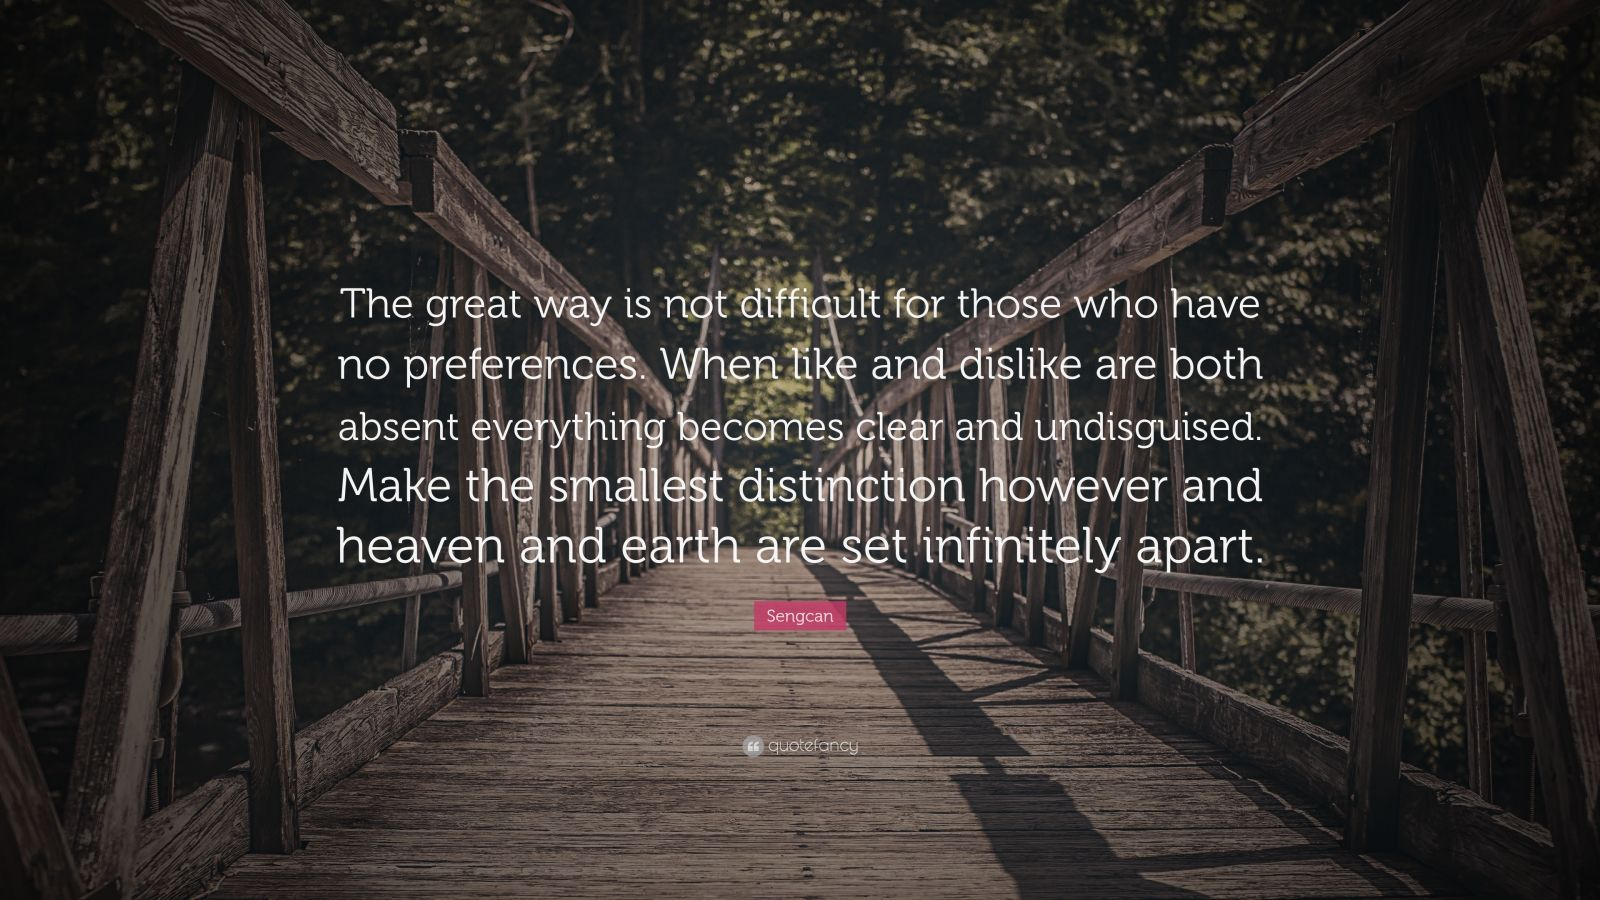 """Sengcan Quote: """"The great way is not difficult for those who have no preferences. When like and dislike are both absent everything becomes clear and undisguised. Make the smallest distinction however and heaven and earth are set infinitely apart."""""""